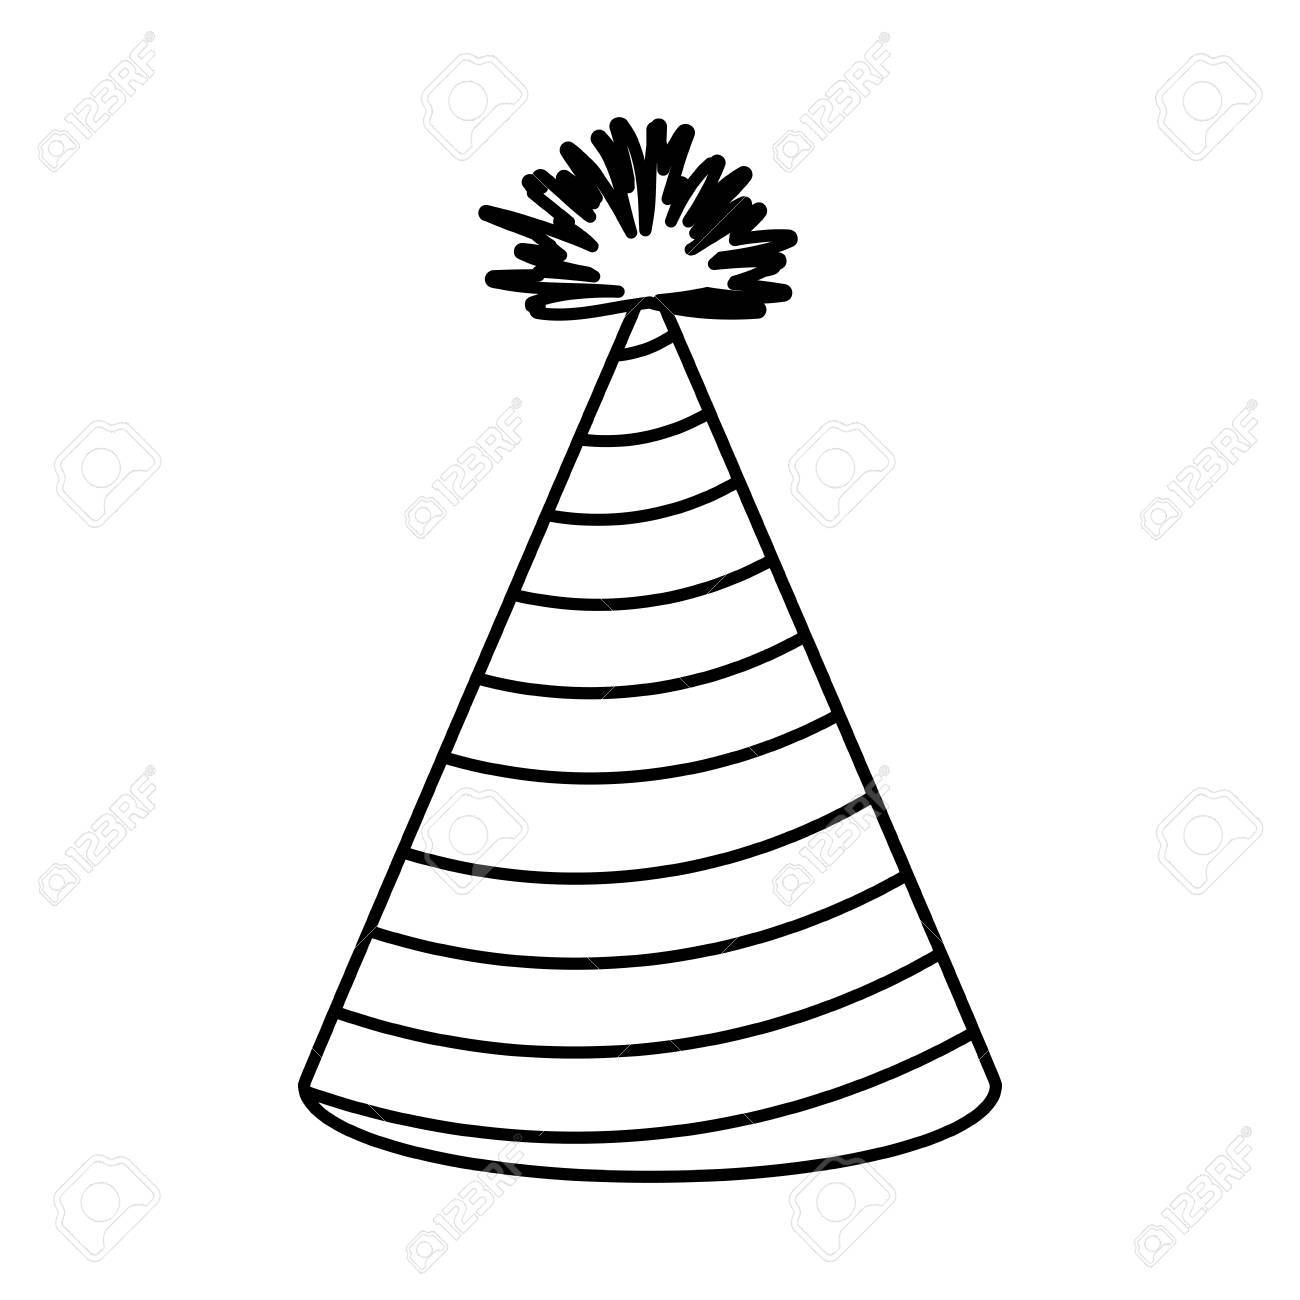 1300x1300 Monochrome Silhouette Of Party Hat With Radial Decorative Lines